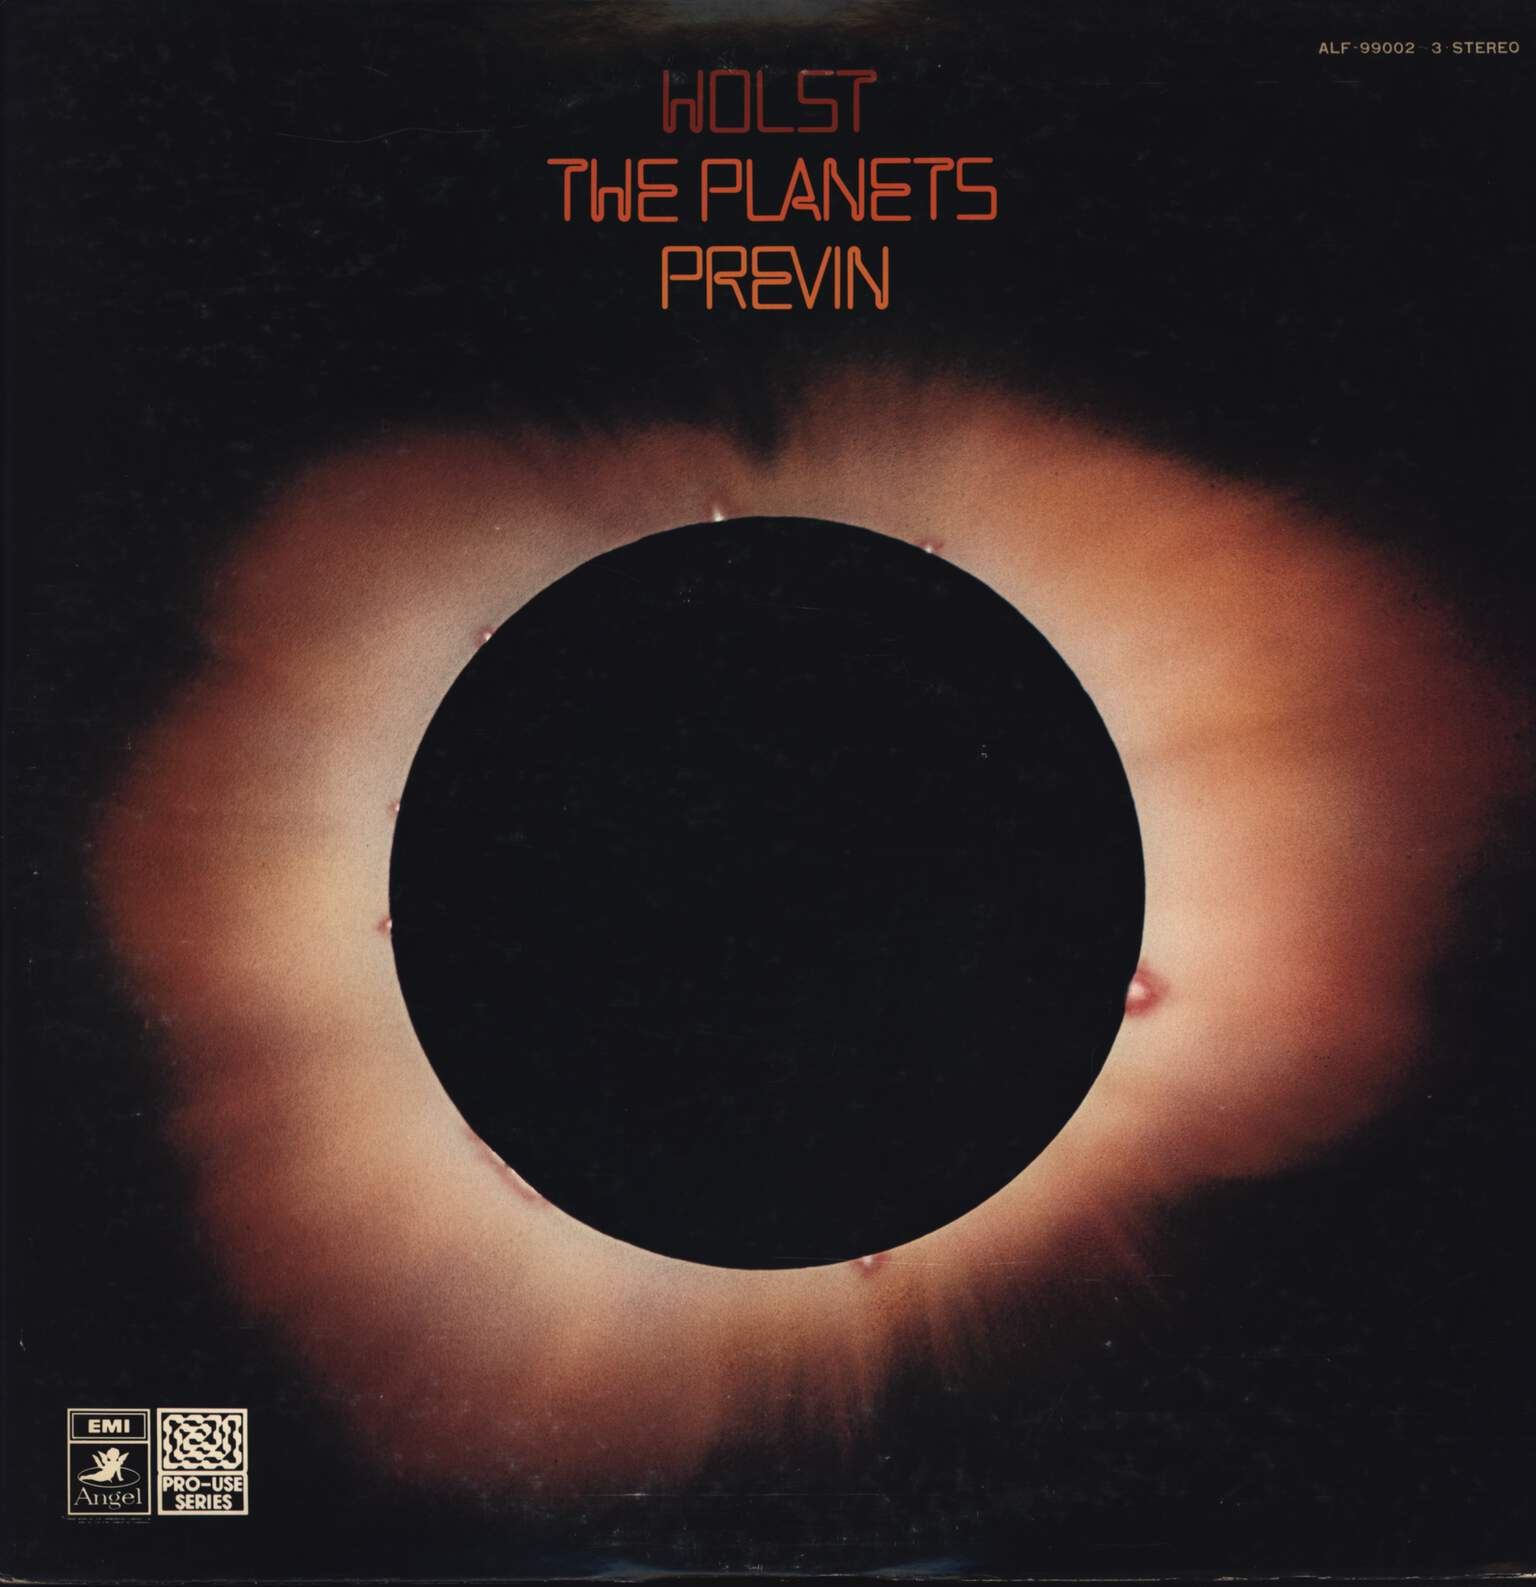 Gustav Holst: The Planets, Op. 32, LP (Vinyl)